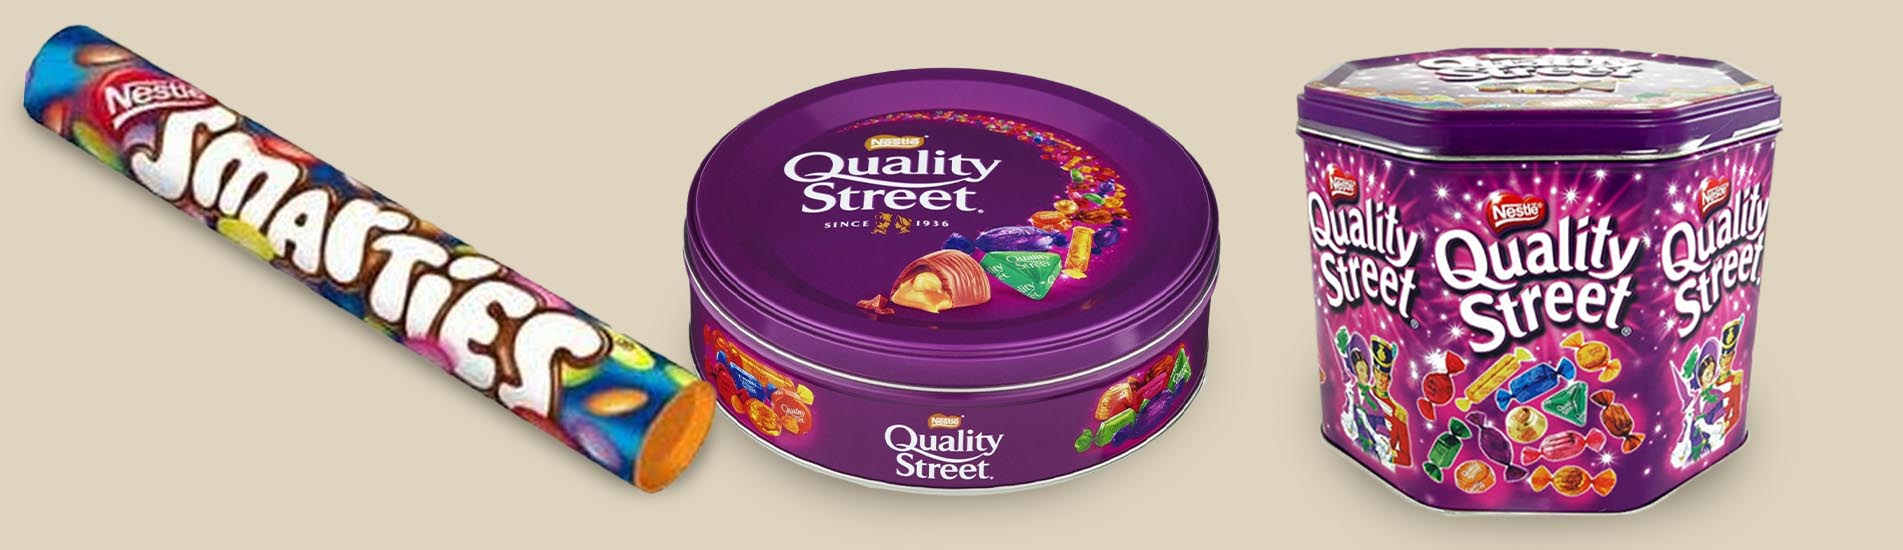 Quality Street and Smarties – Nestlé's famous brands